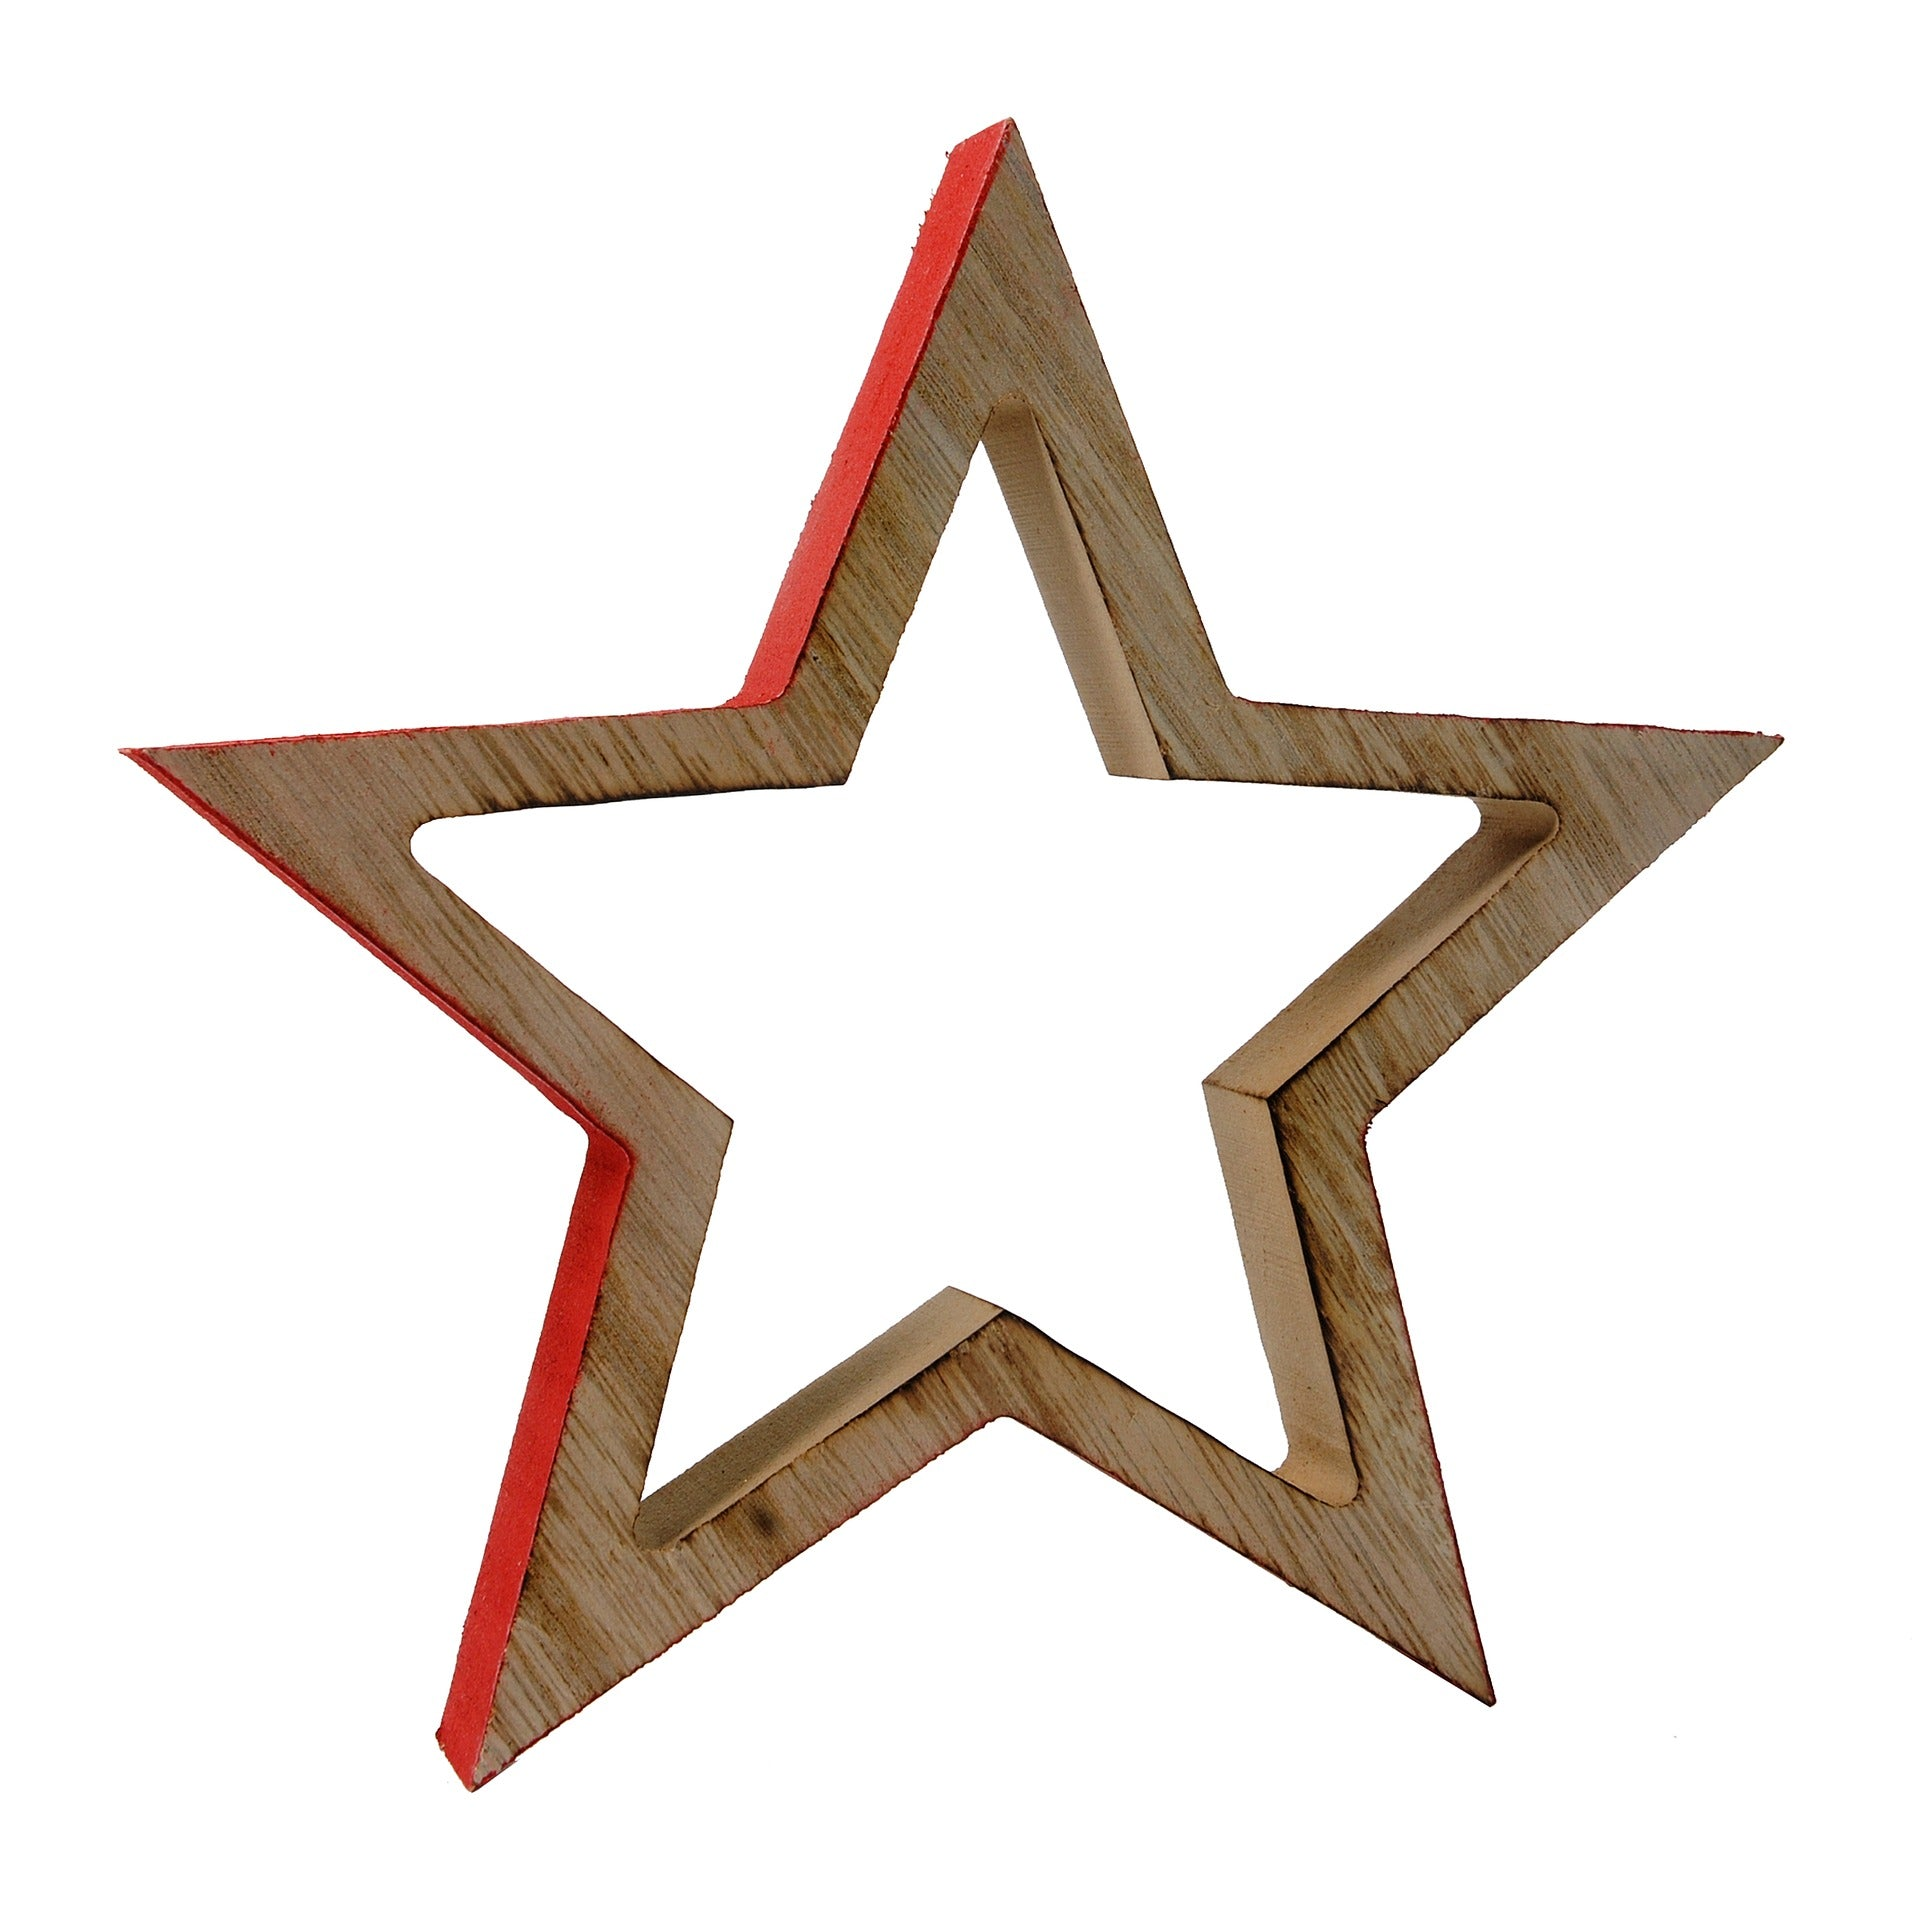 christmas shapes wood timber cutting out laser cnc wooden shapes stars raindeers timber shapes shapes ireland timber custom wood designs ireland laser cutting chrismas decorating decoration wholesale irealnd custom woo designs